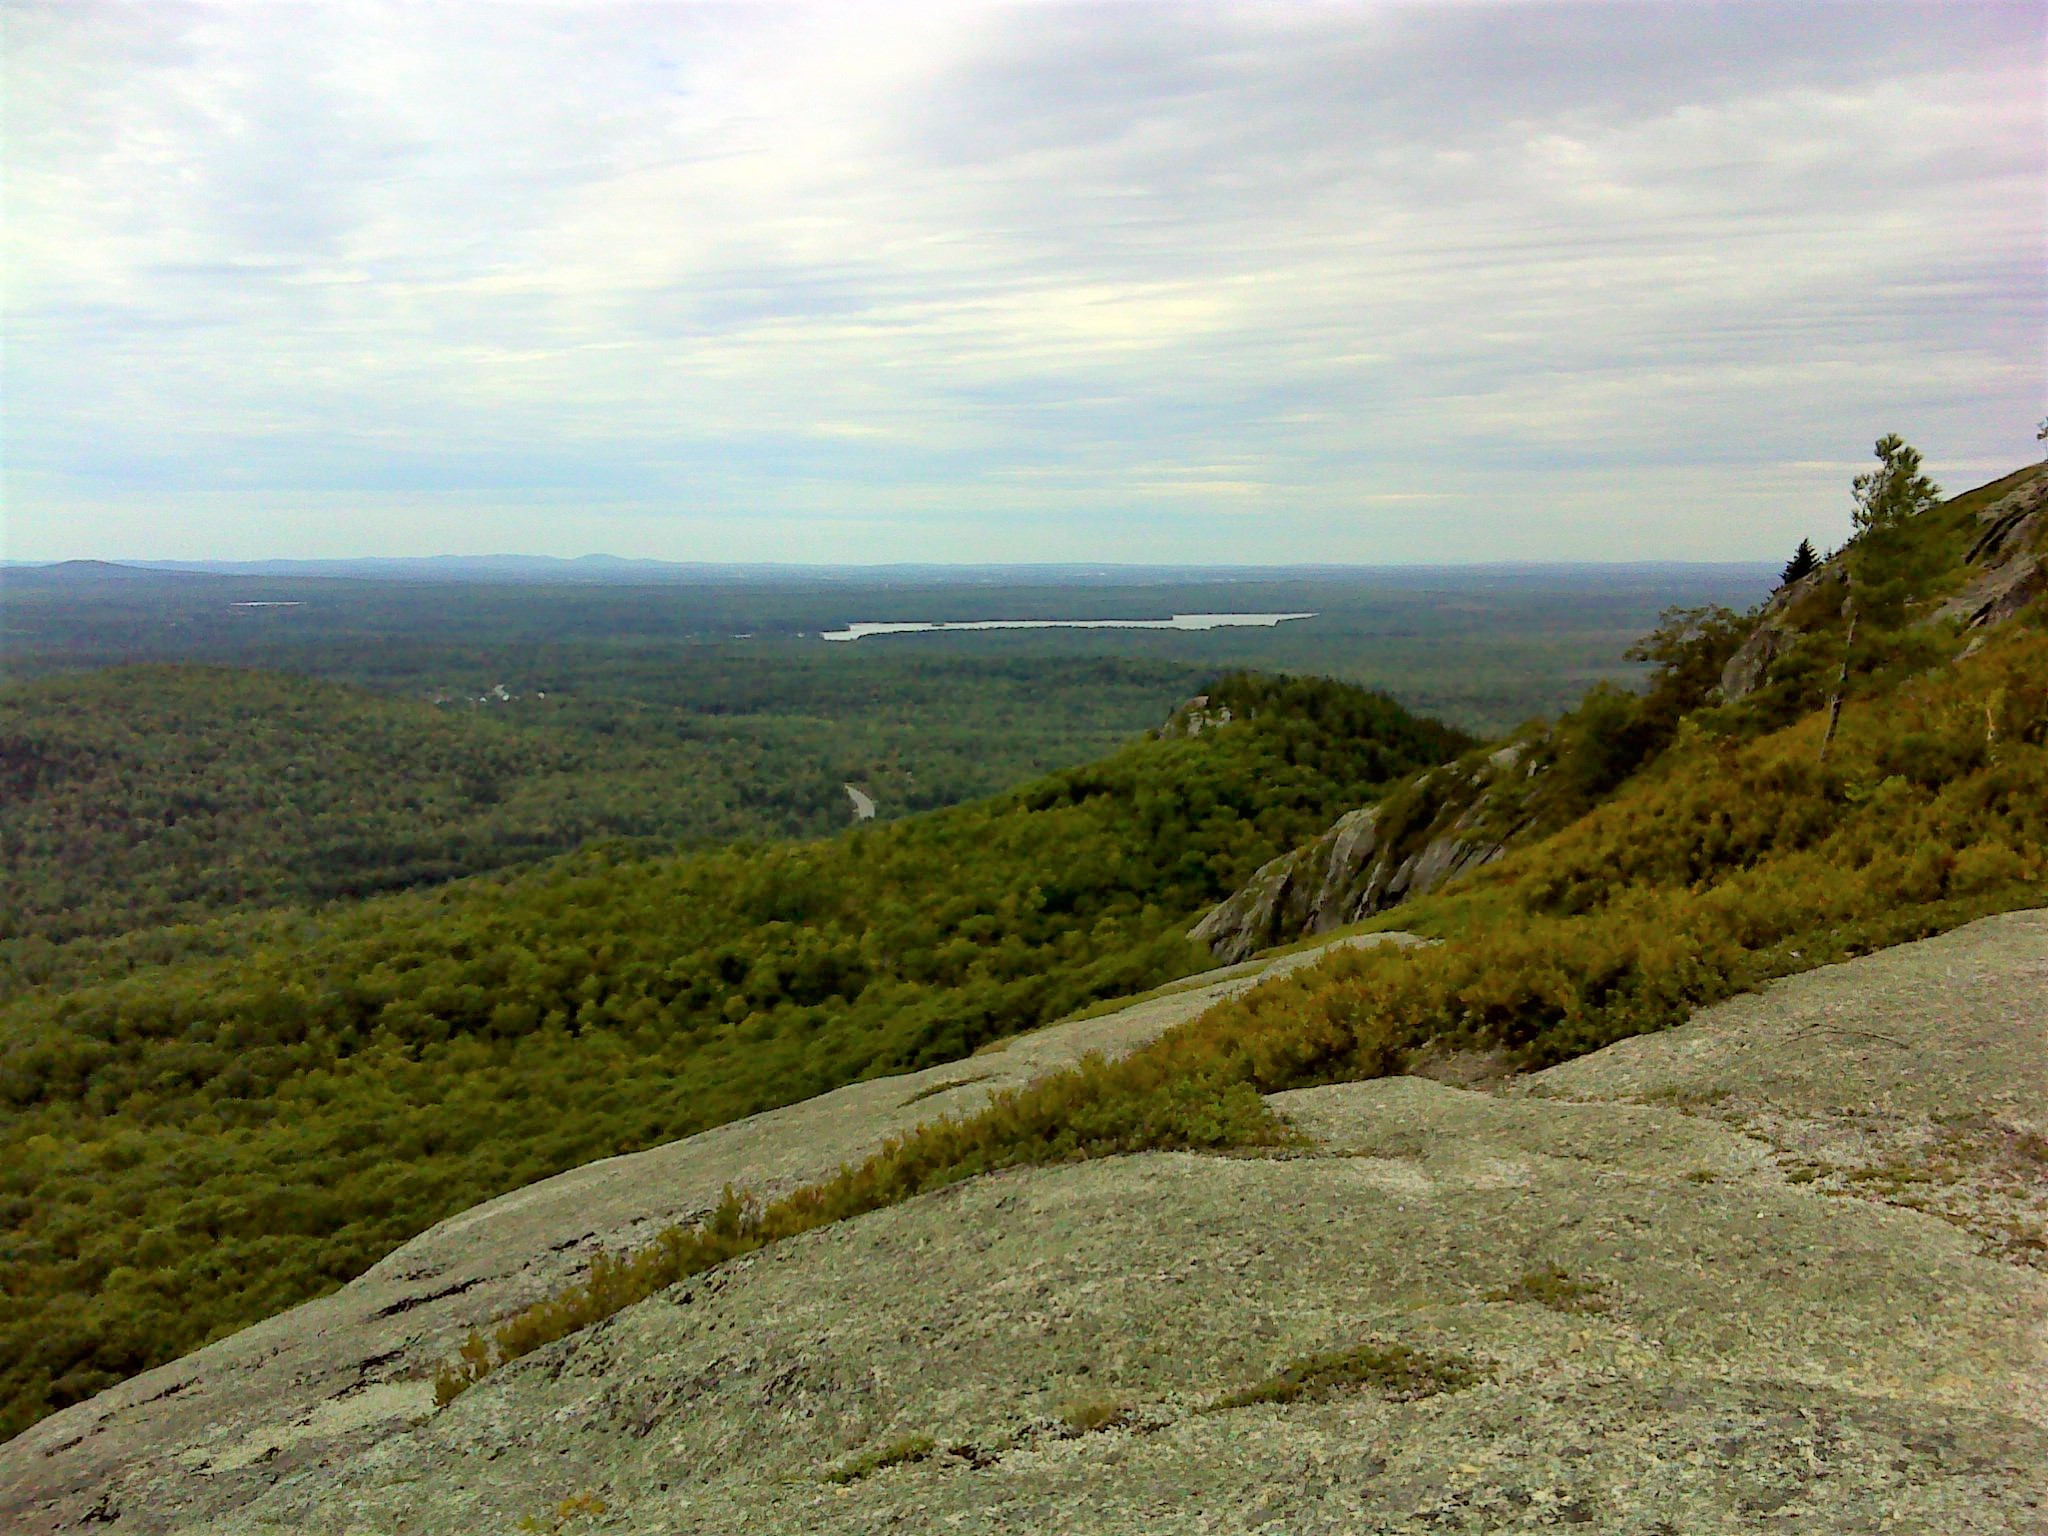 Little Chick Hill from near the summit of Big Chick Hill